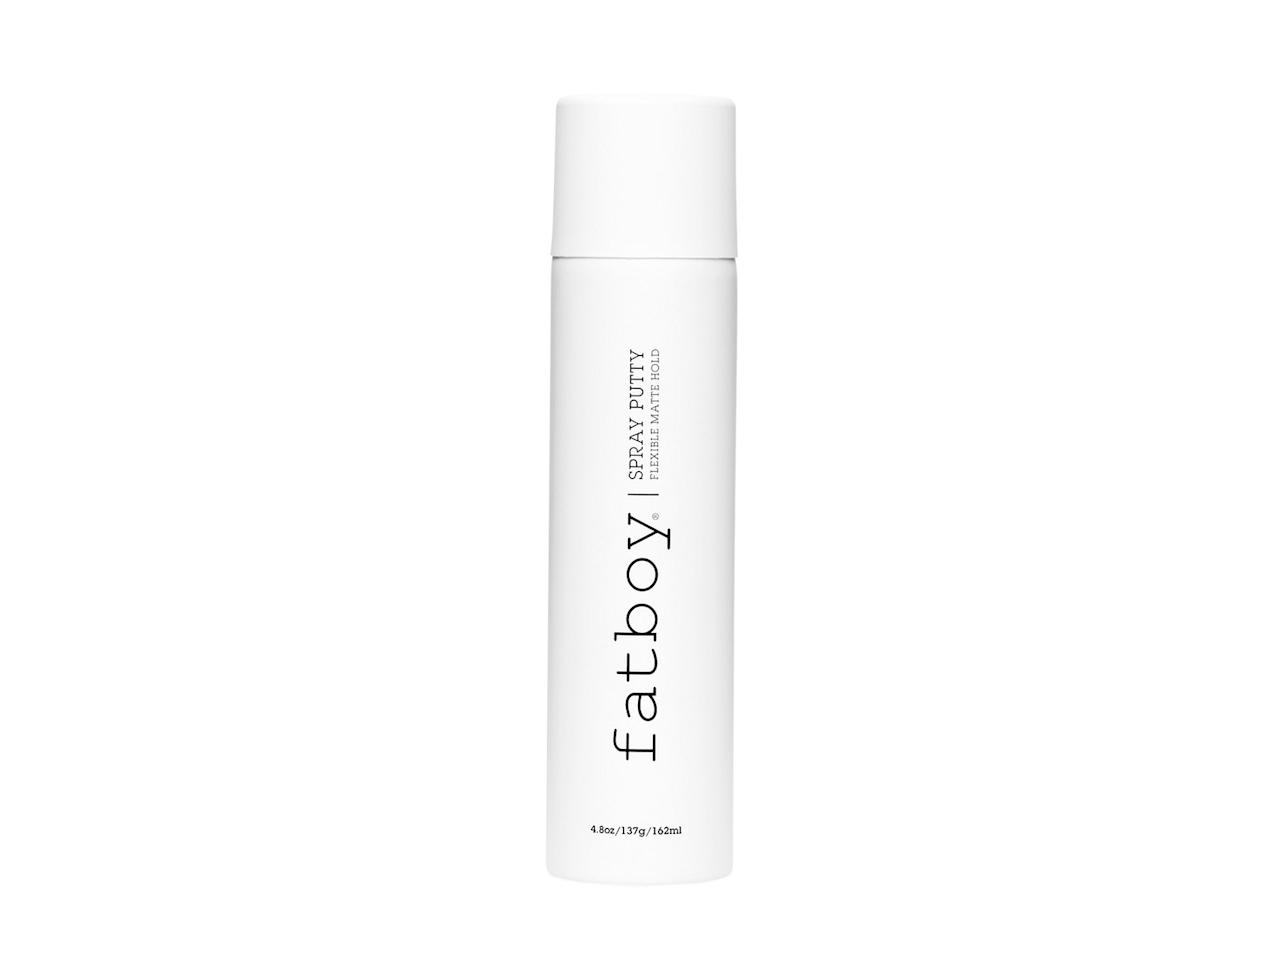 """<p>Get lived-in, piecey texture without dirtying your hands, thanks to the innovative spray form. Our short-haired tester loved that it dried soft, not sticky.</p> <p><strong>To buy:</strong> $28; <a href=""""https://click.linksynergy.com/deeplink?id=93xLBvPhAeE&mid=43176&murl=http%3A%2F%2Fwww.urbanoutfitters.com%2Fshop%2Ffatboy-hairspray-putty%3FinventoryCountry%3DUS%26color%3D000%26mrkgcl%3D671%26mrkgadid%3D3214898279%26cm_mmc%3DSEM-_-Google-_-PLA-_-326525228546_product_type_b_product_type_mensgrooming%26product_id%3D47223730%26utm_campaign%3DPLA%26adpos%3D1o1%26creative%3D209973883407%26device%3Dc%26matchtype%3D%26network%3Dg%26gclid%3DEAIaIQobChMItLfL_8_M3QIVClgNCh2hig3wEAQYASABEgKTv_D_BwE&u1=RS%2CTheBestBeautyProductsforFall%252CAccordingtoOurBeautyDirector%25281018BPS%2529%2Ctrowley805%2CMAK%2CIMA%2C629252%2C201810%2CI"""" target=""""_blank"""">urbanoutfitters.com</a>.</p>"""